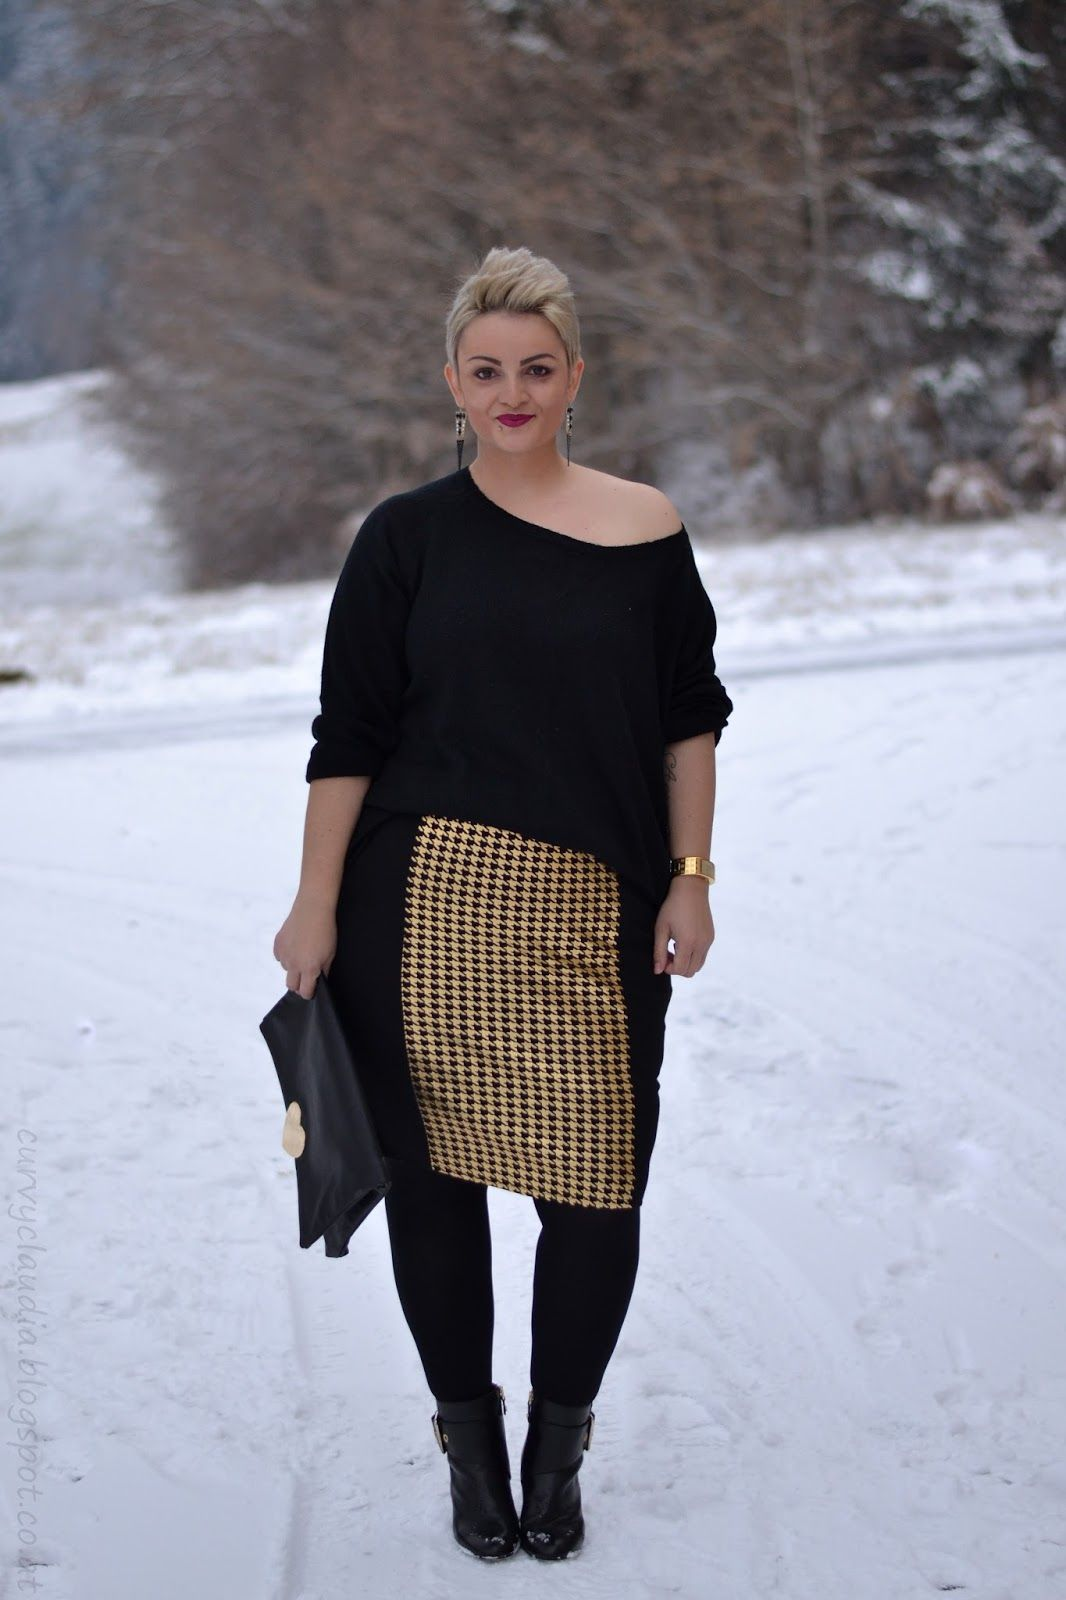 Plus Size Fashion - Curvy Claudia: Black and Gold ...